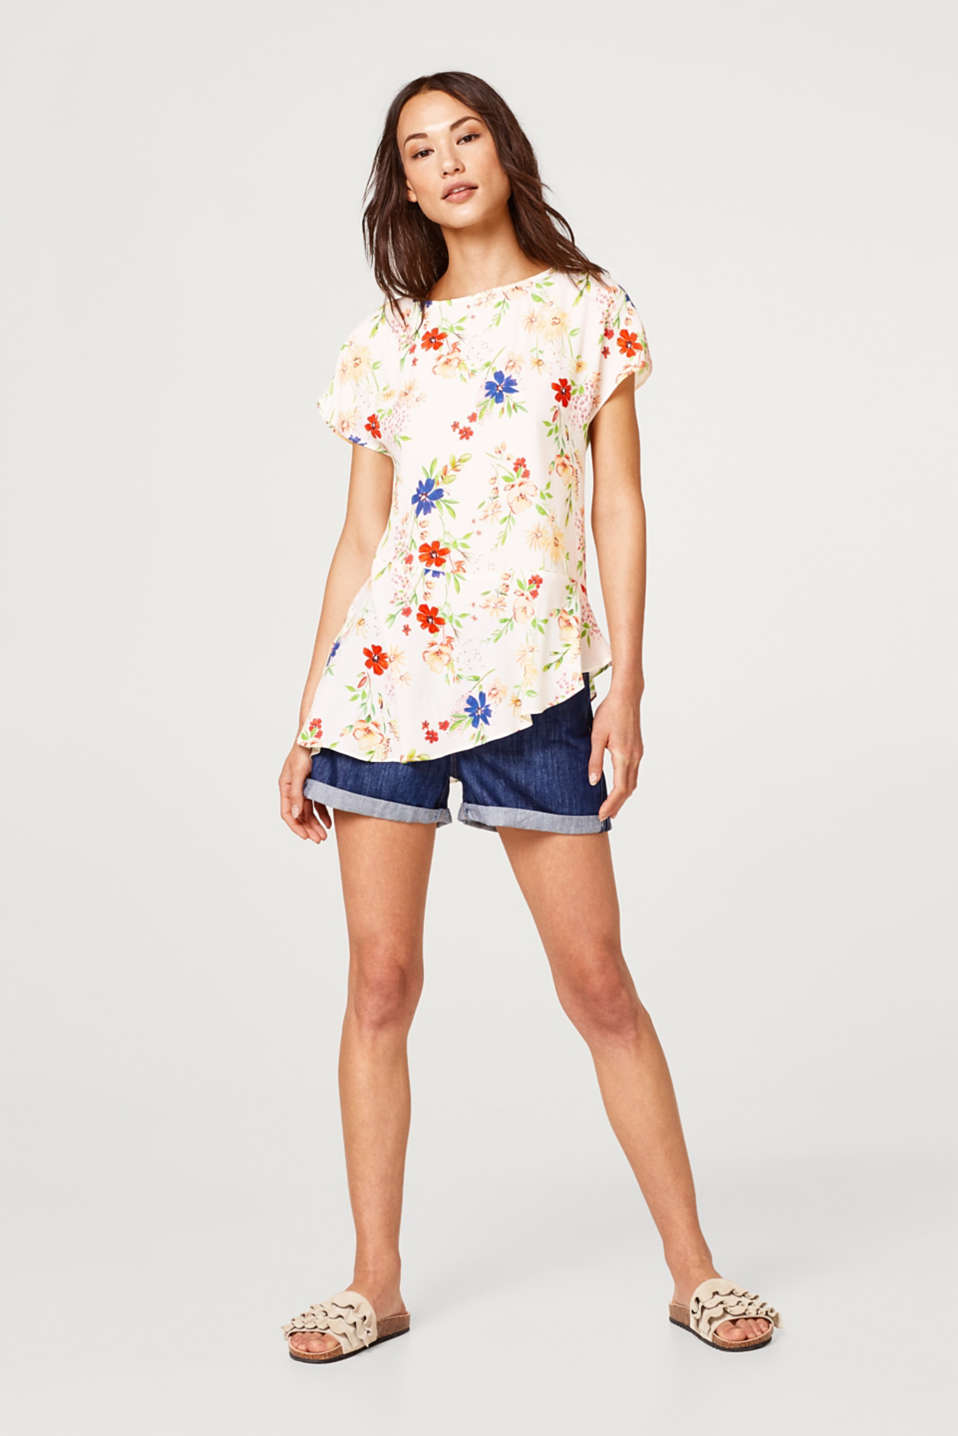 Floral blouse with an asymmetric flounce hem